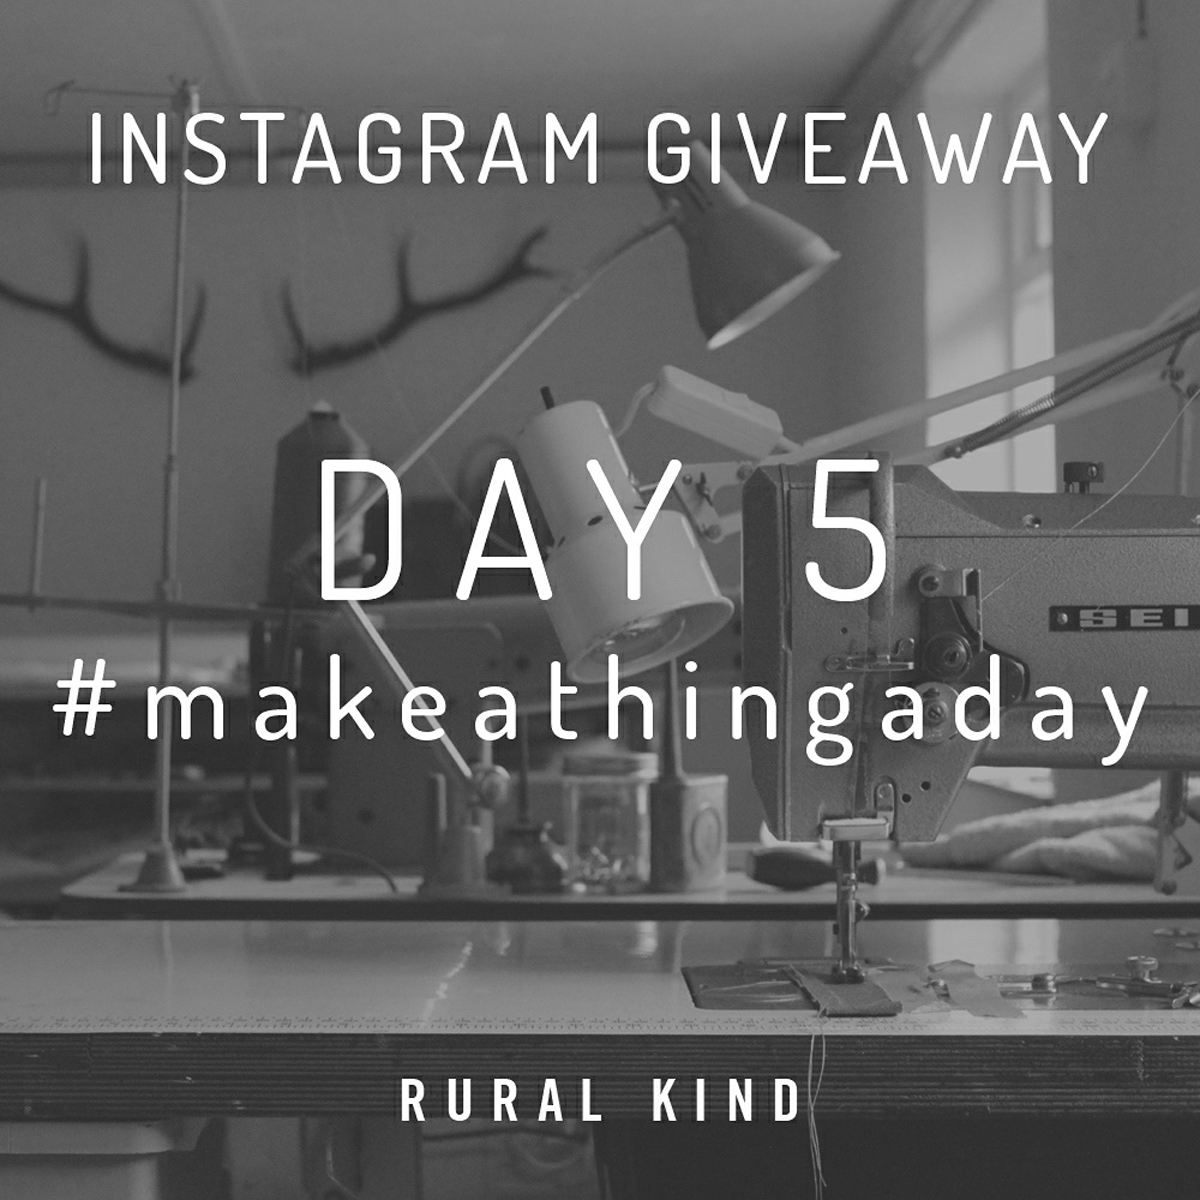 #makeathingaday DAY 5 - FINAL DAY! Todays thing to be made is going to be a gently rugged workshop type of apron. It's something that we've wanted to make for such a long time and this final day seems like the perfect opportunity. Let's hope it's a goodn!